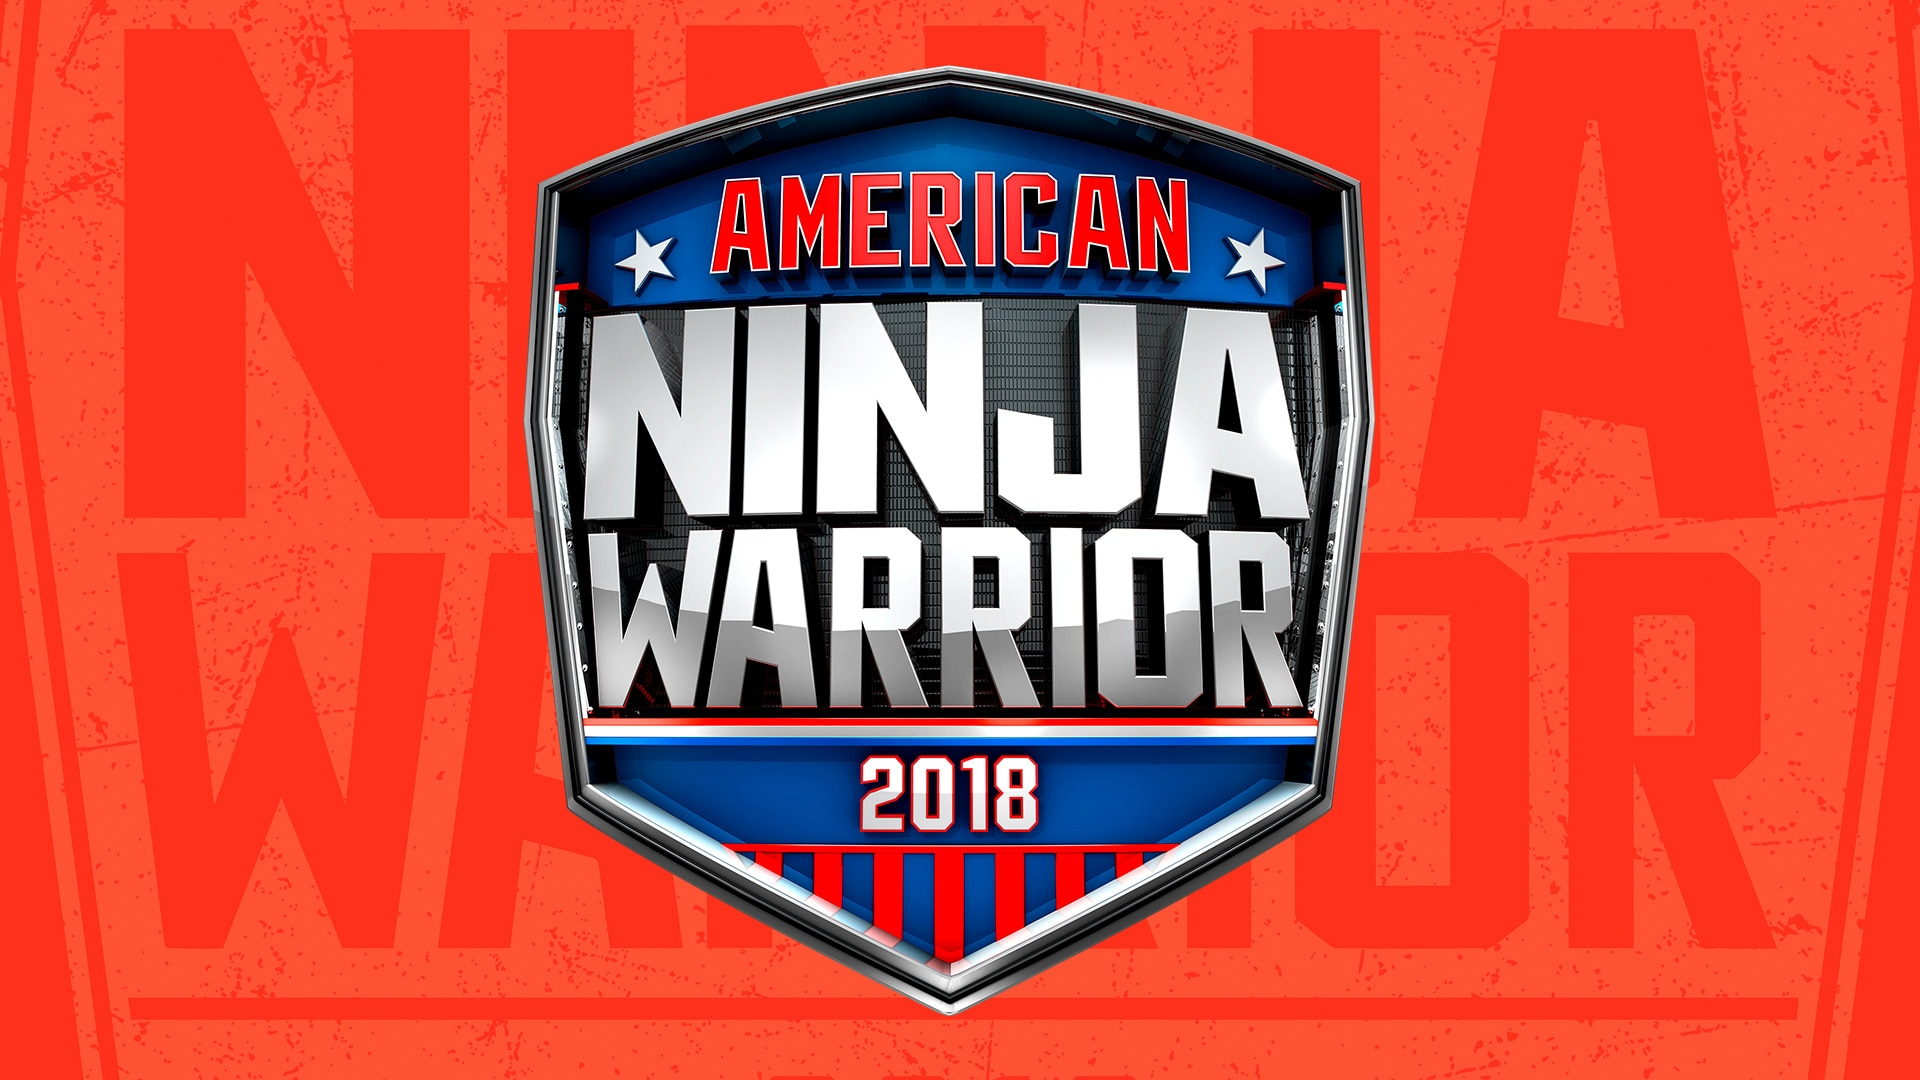 american ninja warrior - nbc